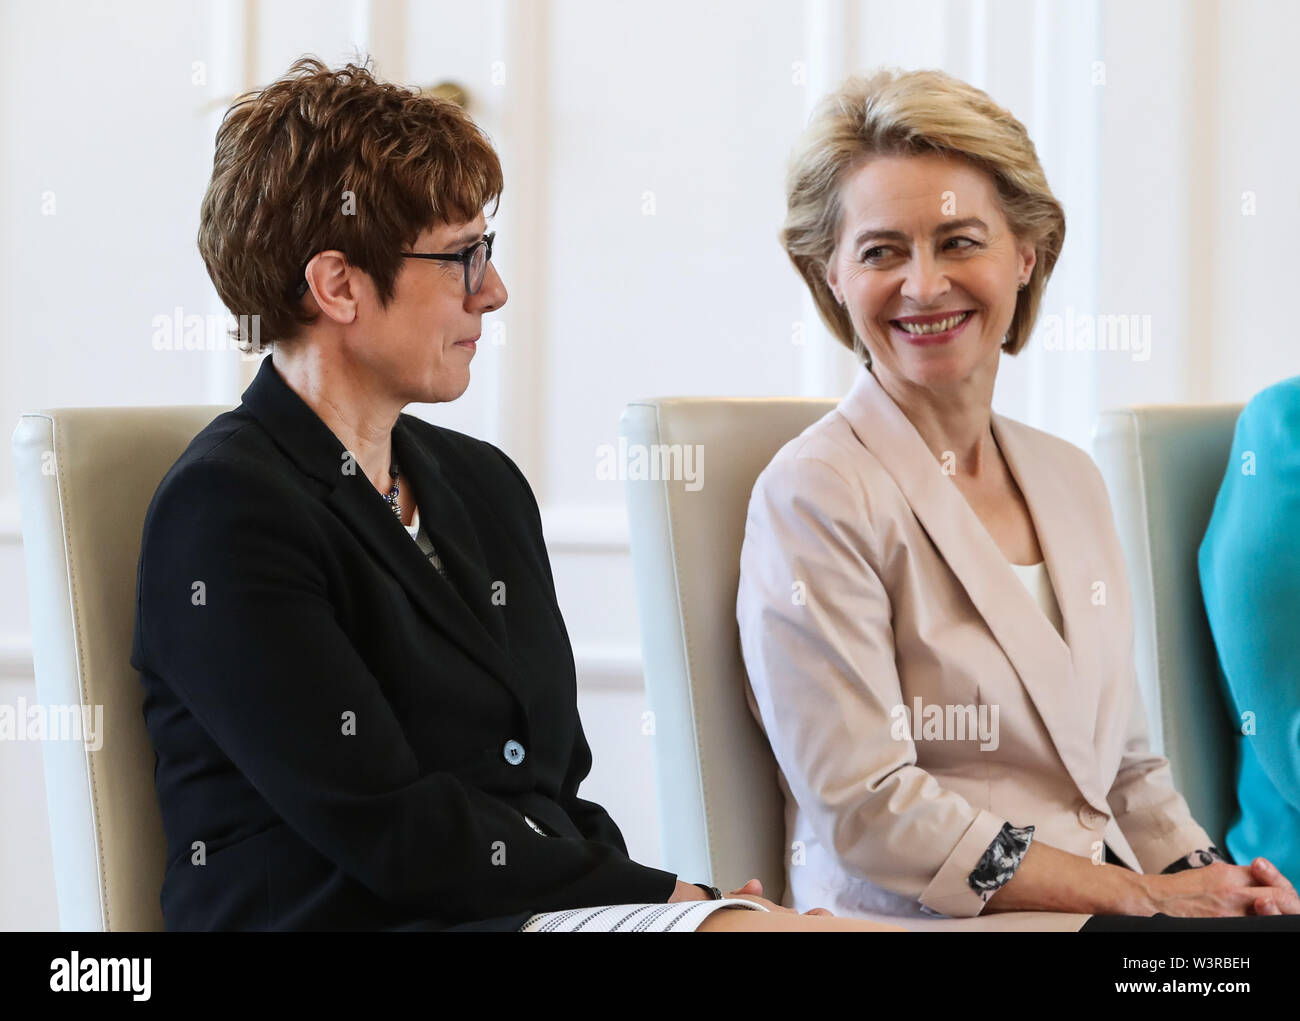 Berliin, Germany. 17th July, 2019. Incoming German Defense Minister Annegret Kramp-Karrenbauer (L) and outgoing German Defense Minister Ursula von der Leyen attend a ceremony for the appointment of German Defense Minister at the Bellevue Palace in Berlin, capital of Germany, July 17, 2019. The leader of the German ruling party Christian Democratic Union (CDU), Annegret Kramp-Karrenbauer, was appointed new German Minister for Defense on Wednesday. Credit: Shan Yuqi/Xinhua/Alamy Live News Stock Photo